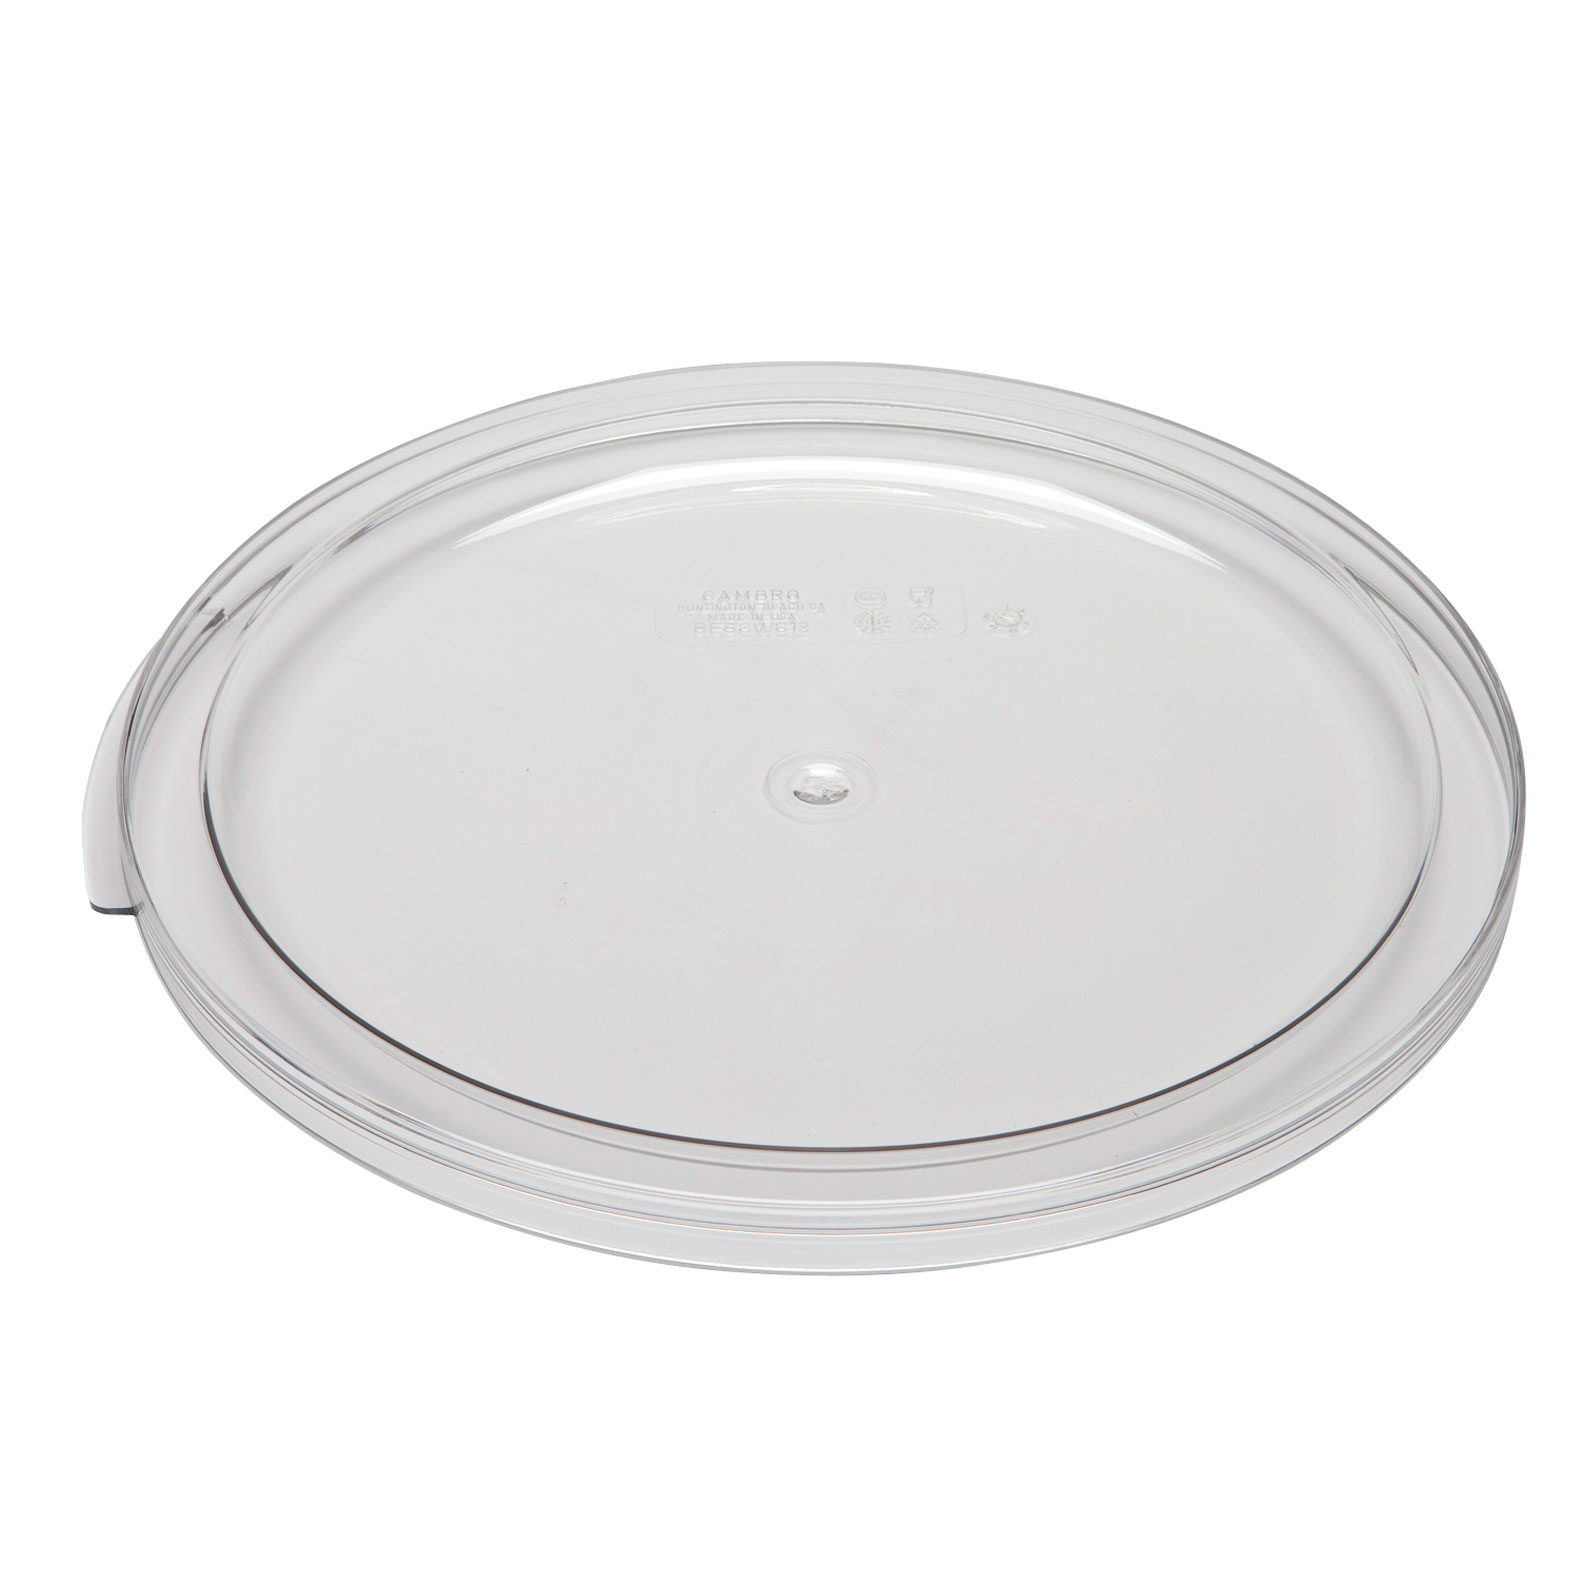 Cambro RFSCWC12135 food storage containers